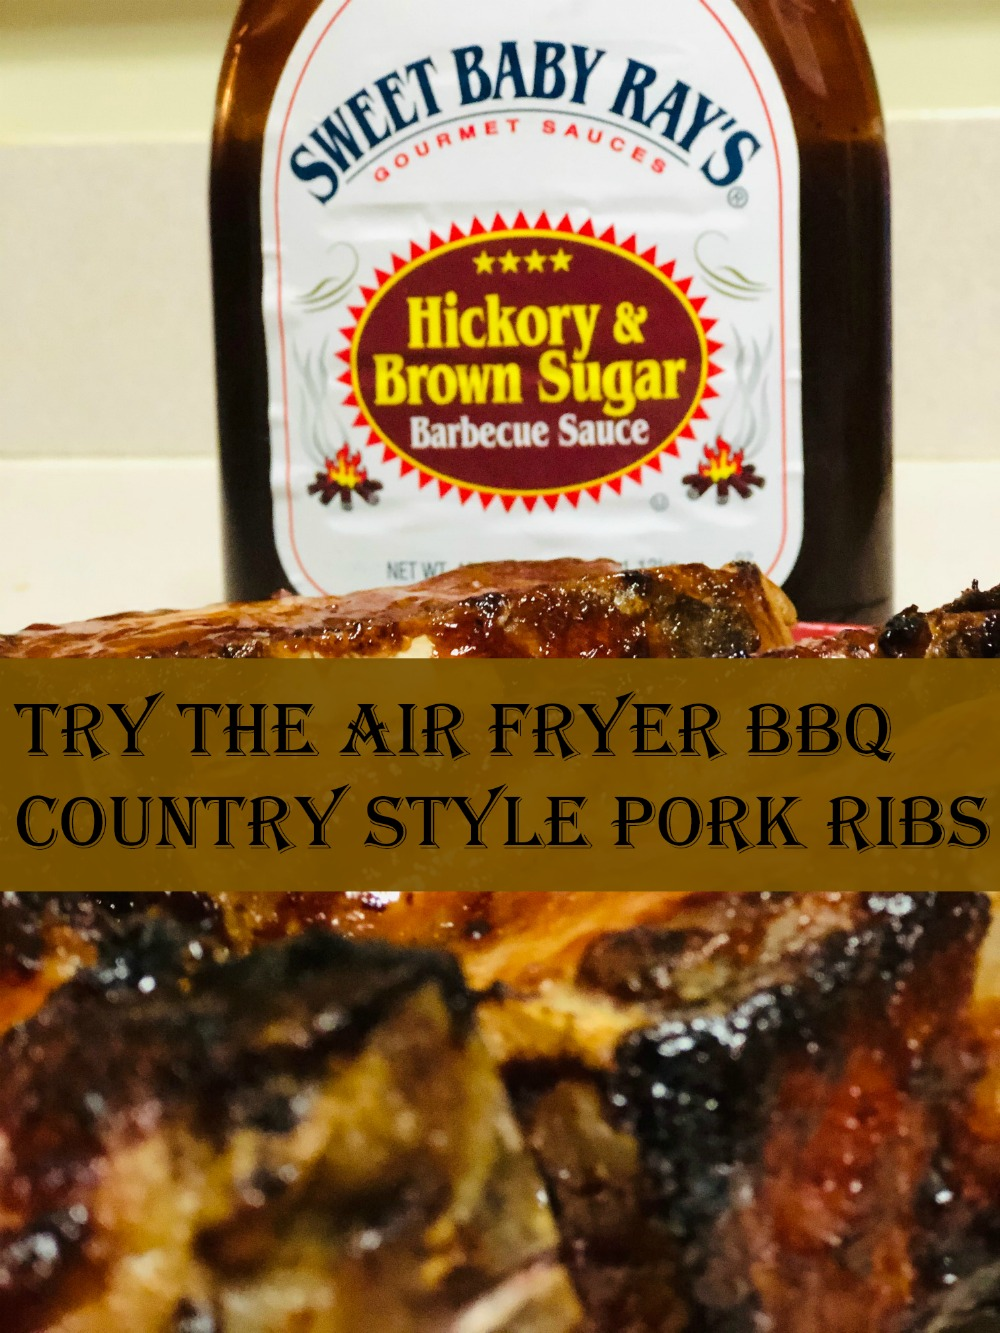 Walmart House: Try The Air Fryer BBQ Country Style Pork Ribs